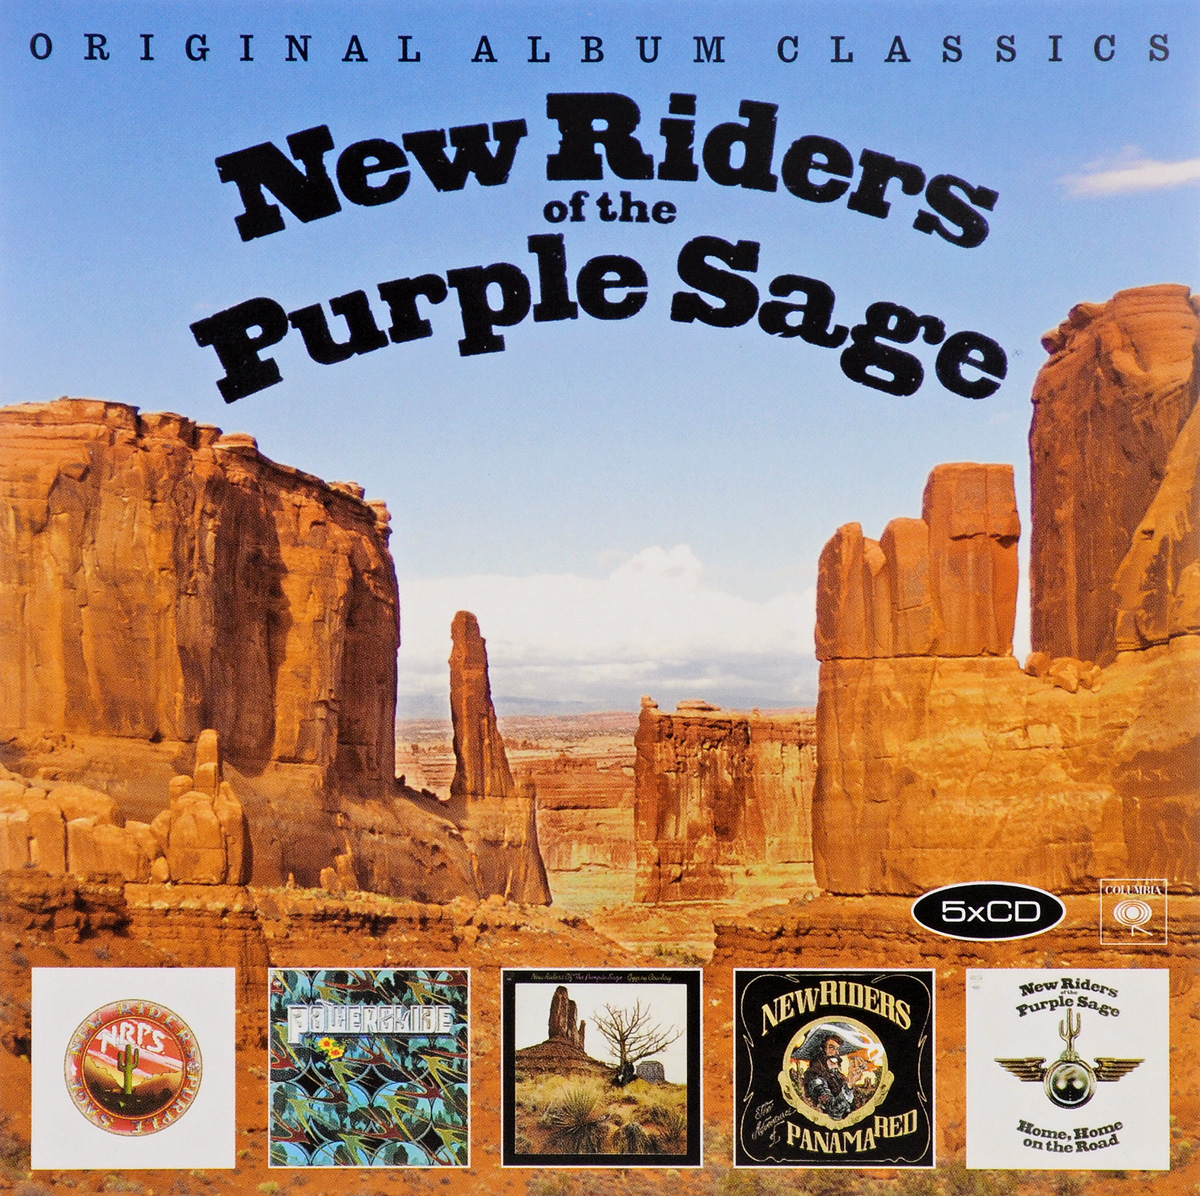 New Riders Of The Purple Sage New Riders Of The Purple Sage. Original Album Classics (New Riders Of The Purple Sage / Powerglide / Gypsy Cowboy / The Adventures Of Panama Red / Home, Home On The Road) cd smokie the other side of the road new extended version